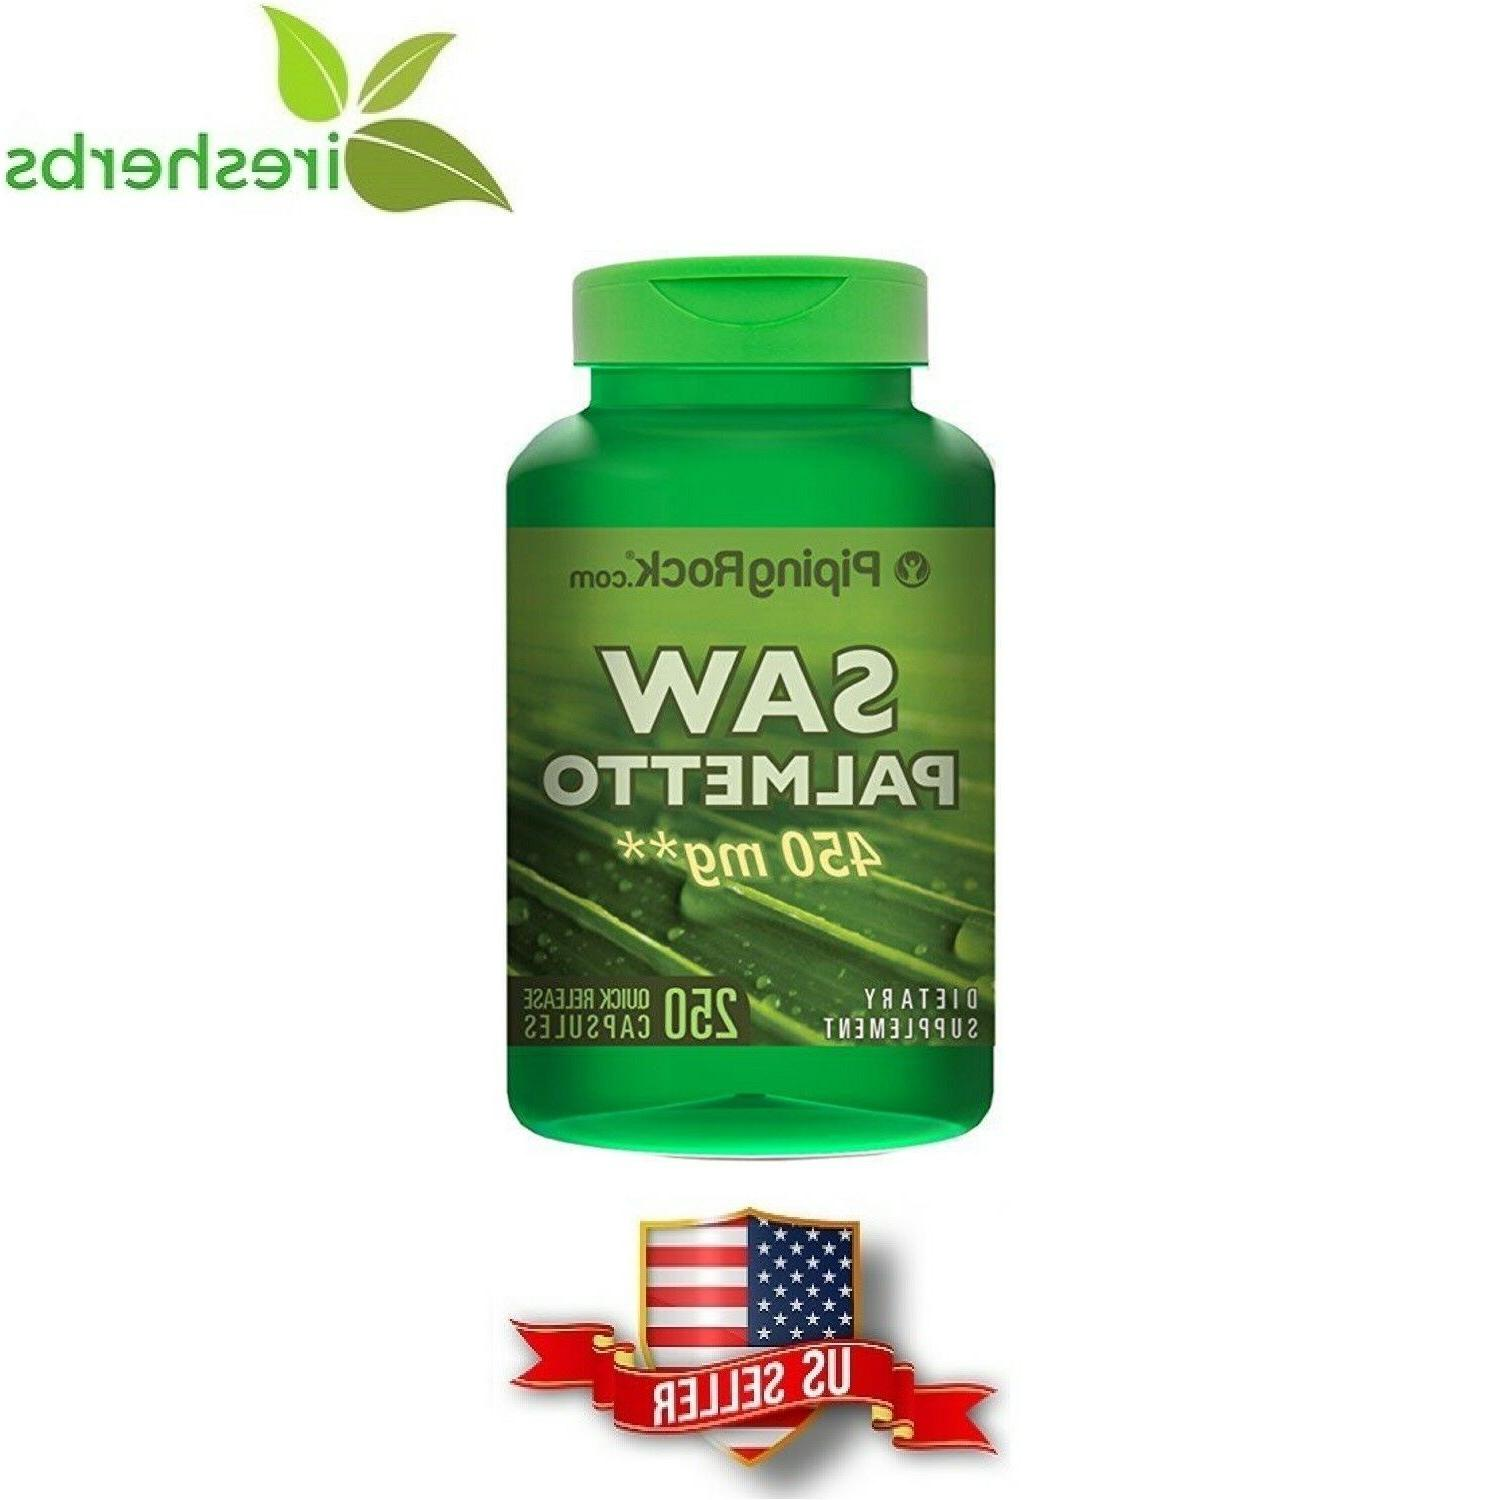 SAW 450MG EXTRA DIET SUPPLEMENT